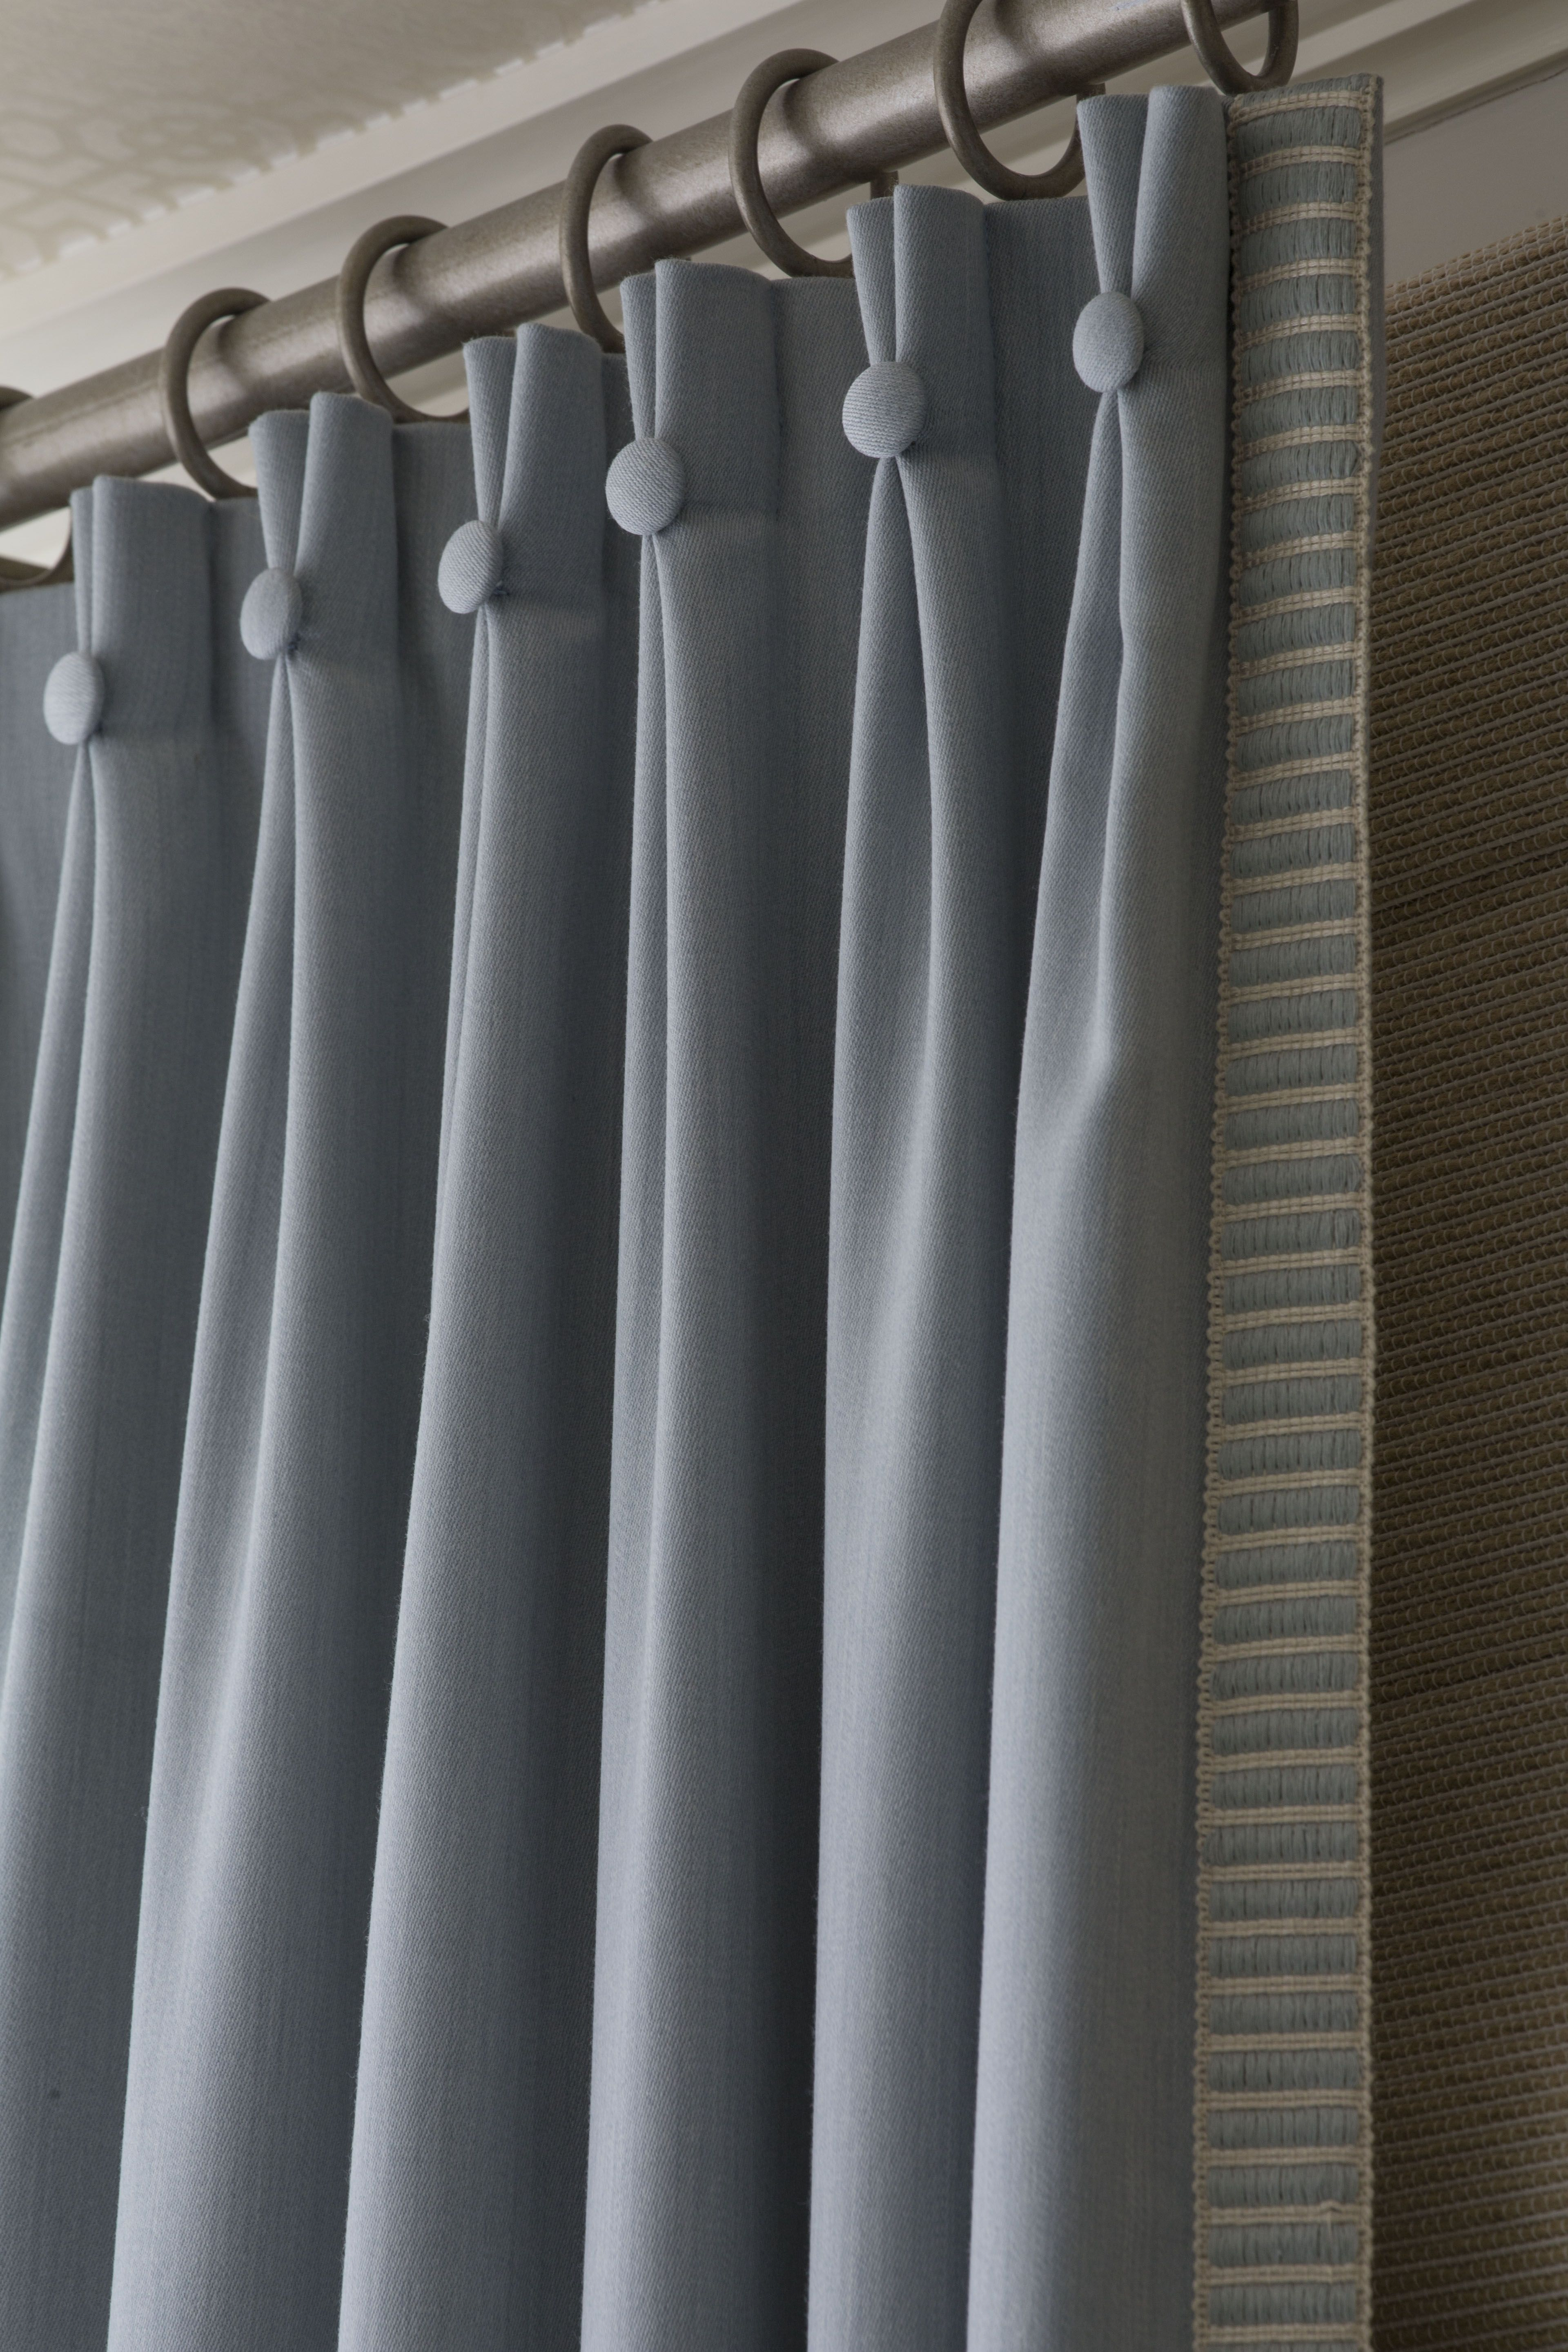 2017 06 types of curtains - Love The Button Drapery Pleats And Trim Drapery Stylesdrapery Ideascurtain